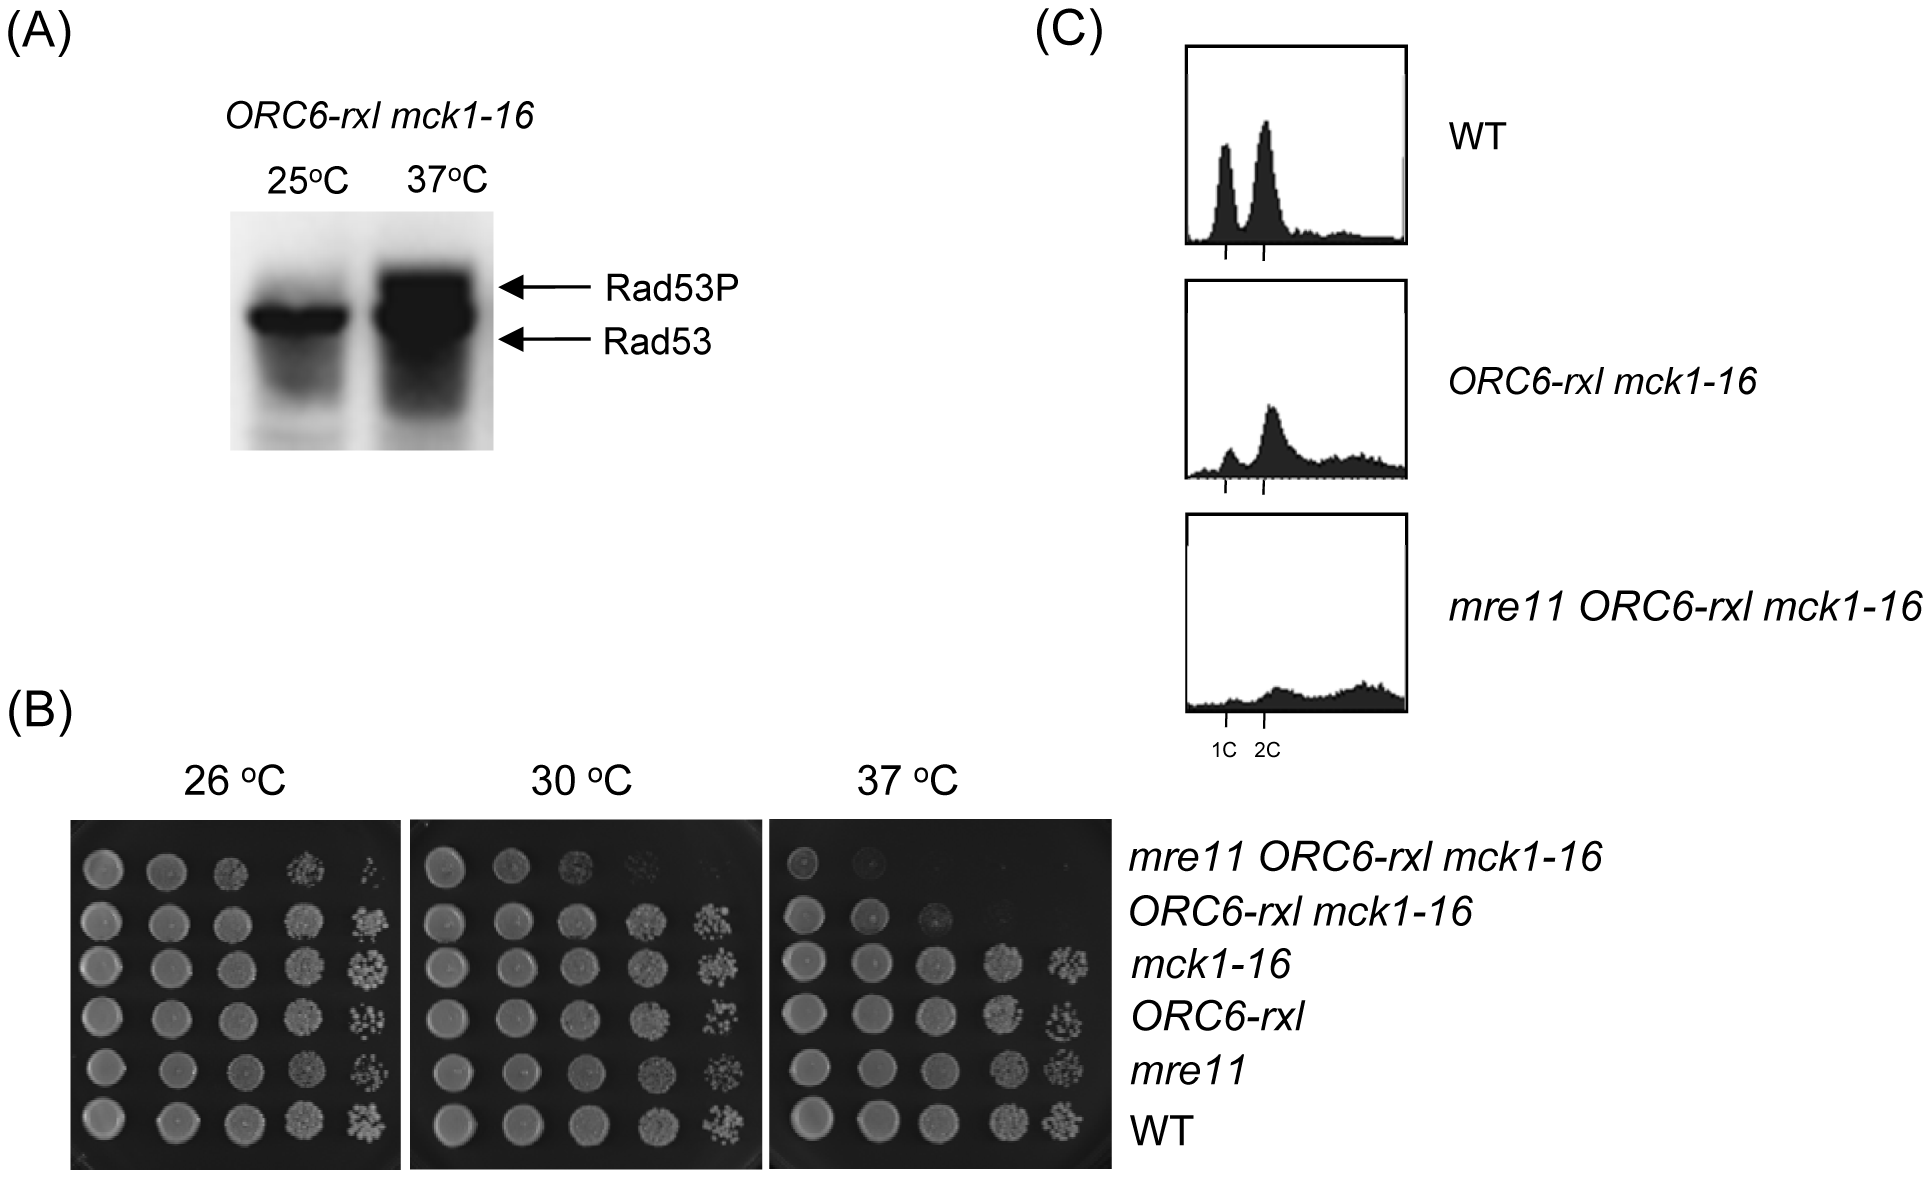 DNA damage was induced in <i>ORC6-rxl mck1-16</i> cells.